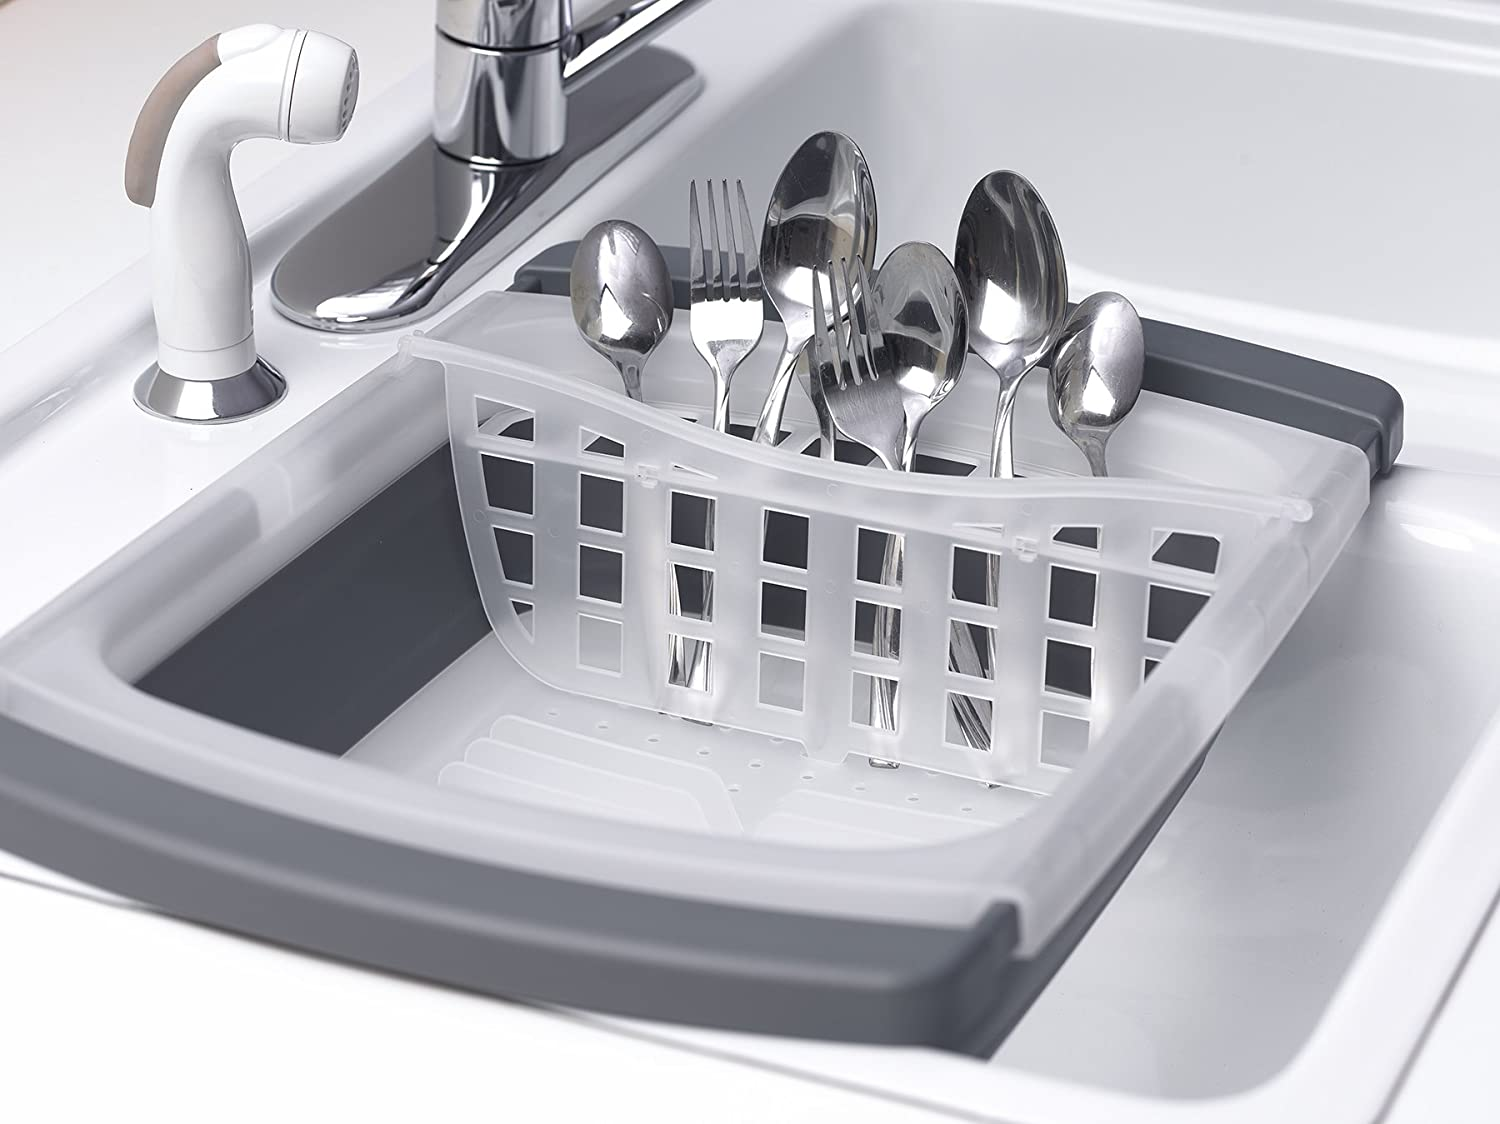 Amazoncom Progressive Prepworks by Collapsible Over The Sink